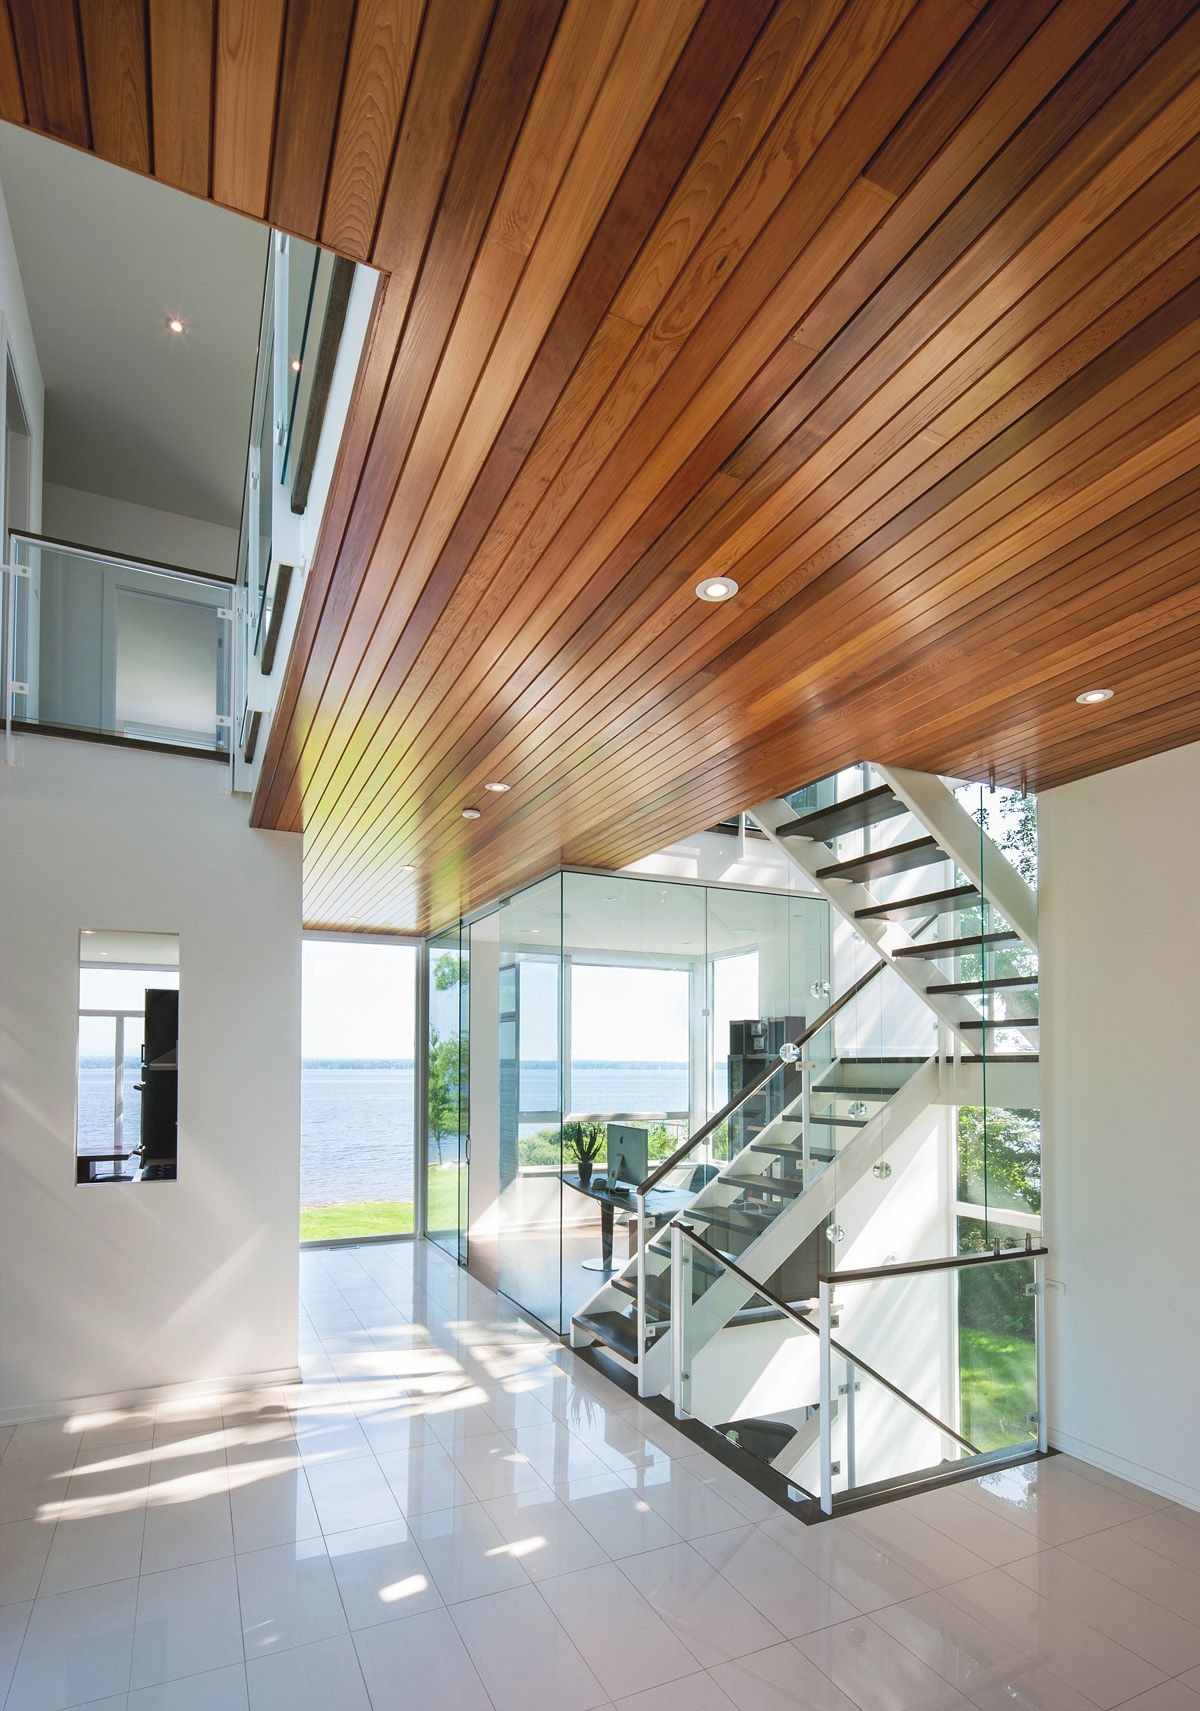 Nothing Beats A Modern Wood Paneled Ceiling.